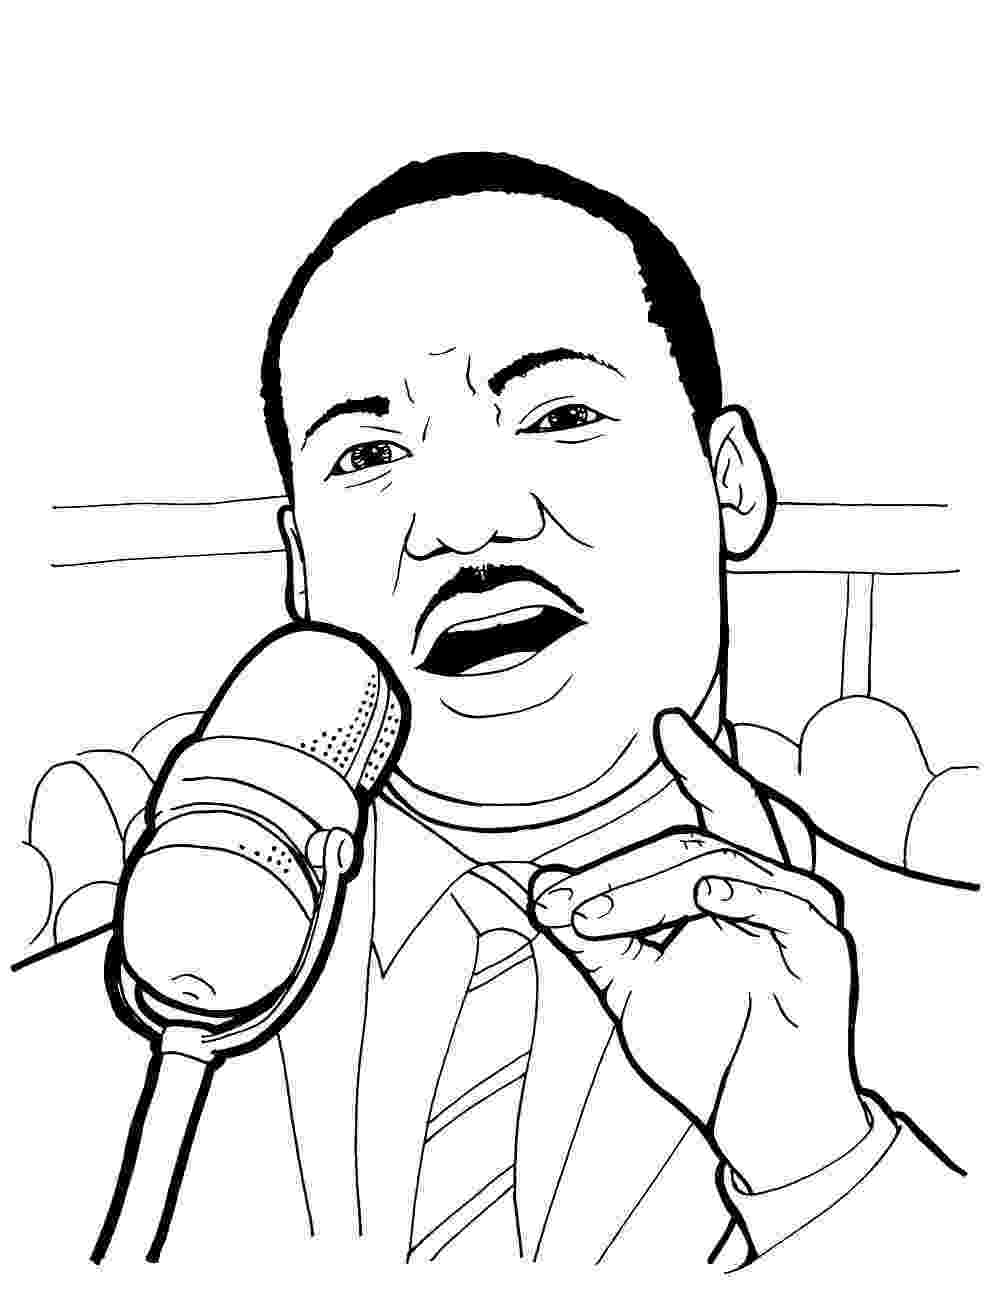 free printable martin luther king coloring pages classroom freebies too let39s celebrate dr king freebie king luther free coloring printable martin pages